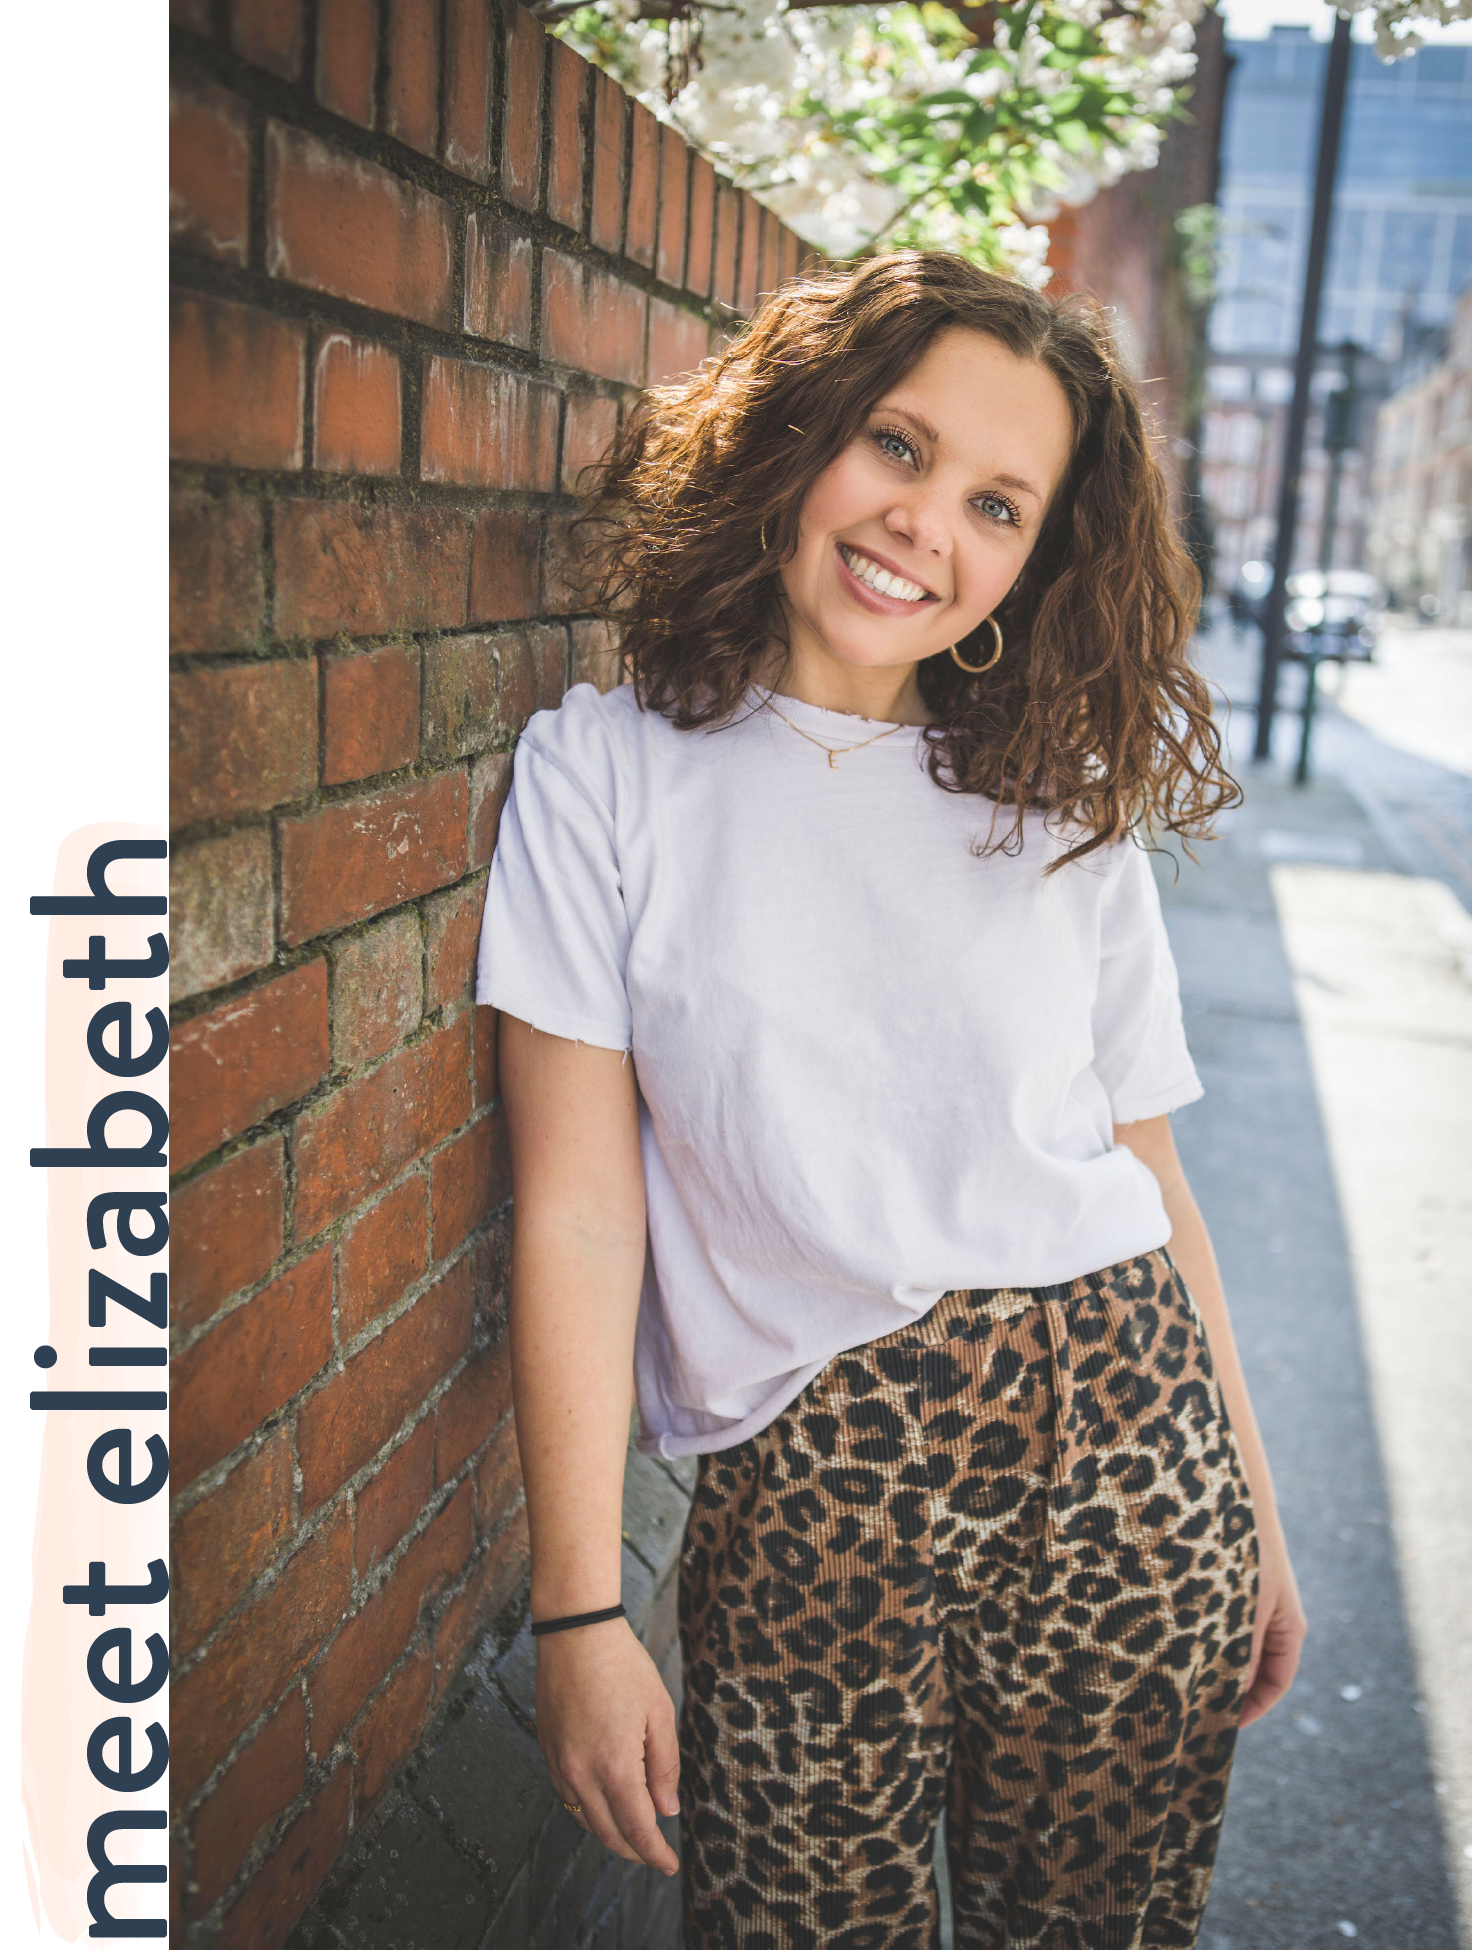 HEY I'm elizabeth, FASHION BRAND CONSULTANT - AFTER 10 YEARS IN THE INDUSTRY & RUNNING A £50M DEPARTMENT, I'M NOW WORKING 1-1 WITH PURPOSE DRIVEN INDEPENDENT BRANDSDo you need guidance & clarity to ensure your brand is moving in the right direction?perhaps you need support to focus on the future of your business?Let's work together to implement effective & dynamic changes to DRIVE YOUR BUSINESS FORWARD, shape your vision & increase your bottom line.